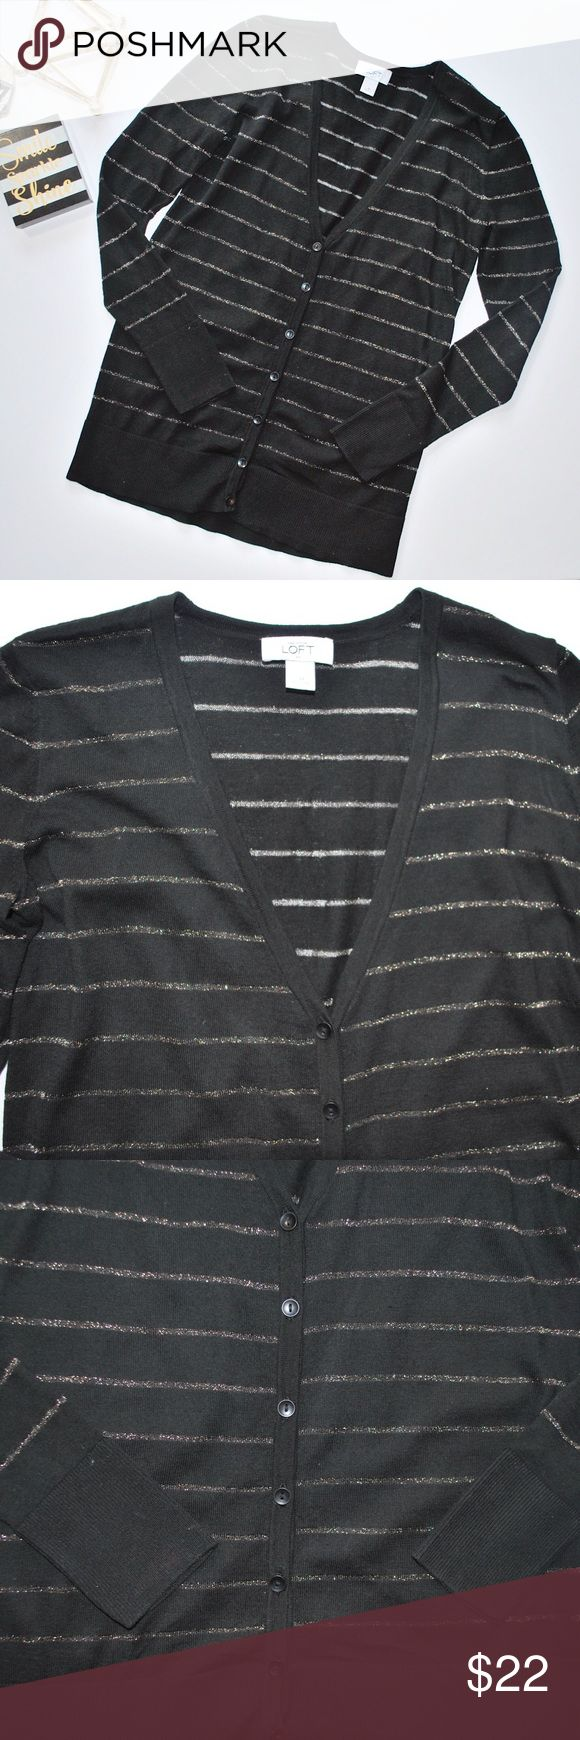 New Listing ➡️ LOFT Black & Gold Cardigan Long button-up, black cardigan with gold stripes. Excellent condition. I will add measurements as soon as possible. LOFT Sweaters Cardigans